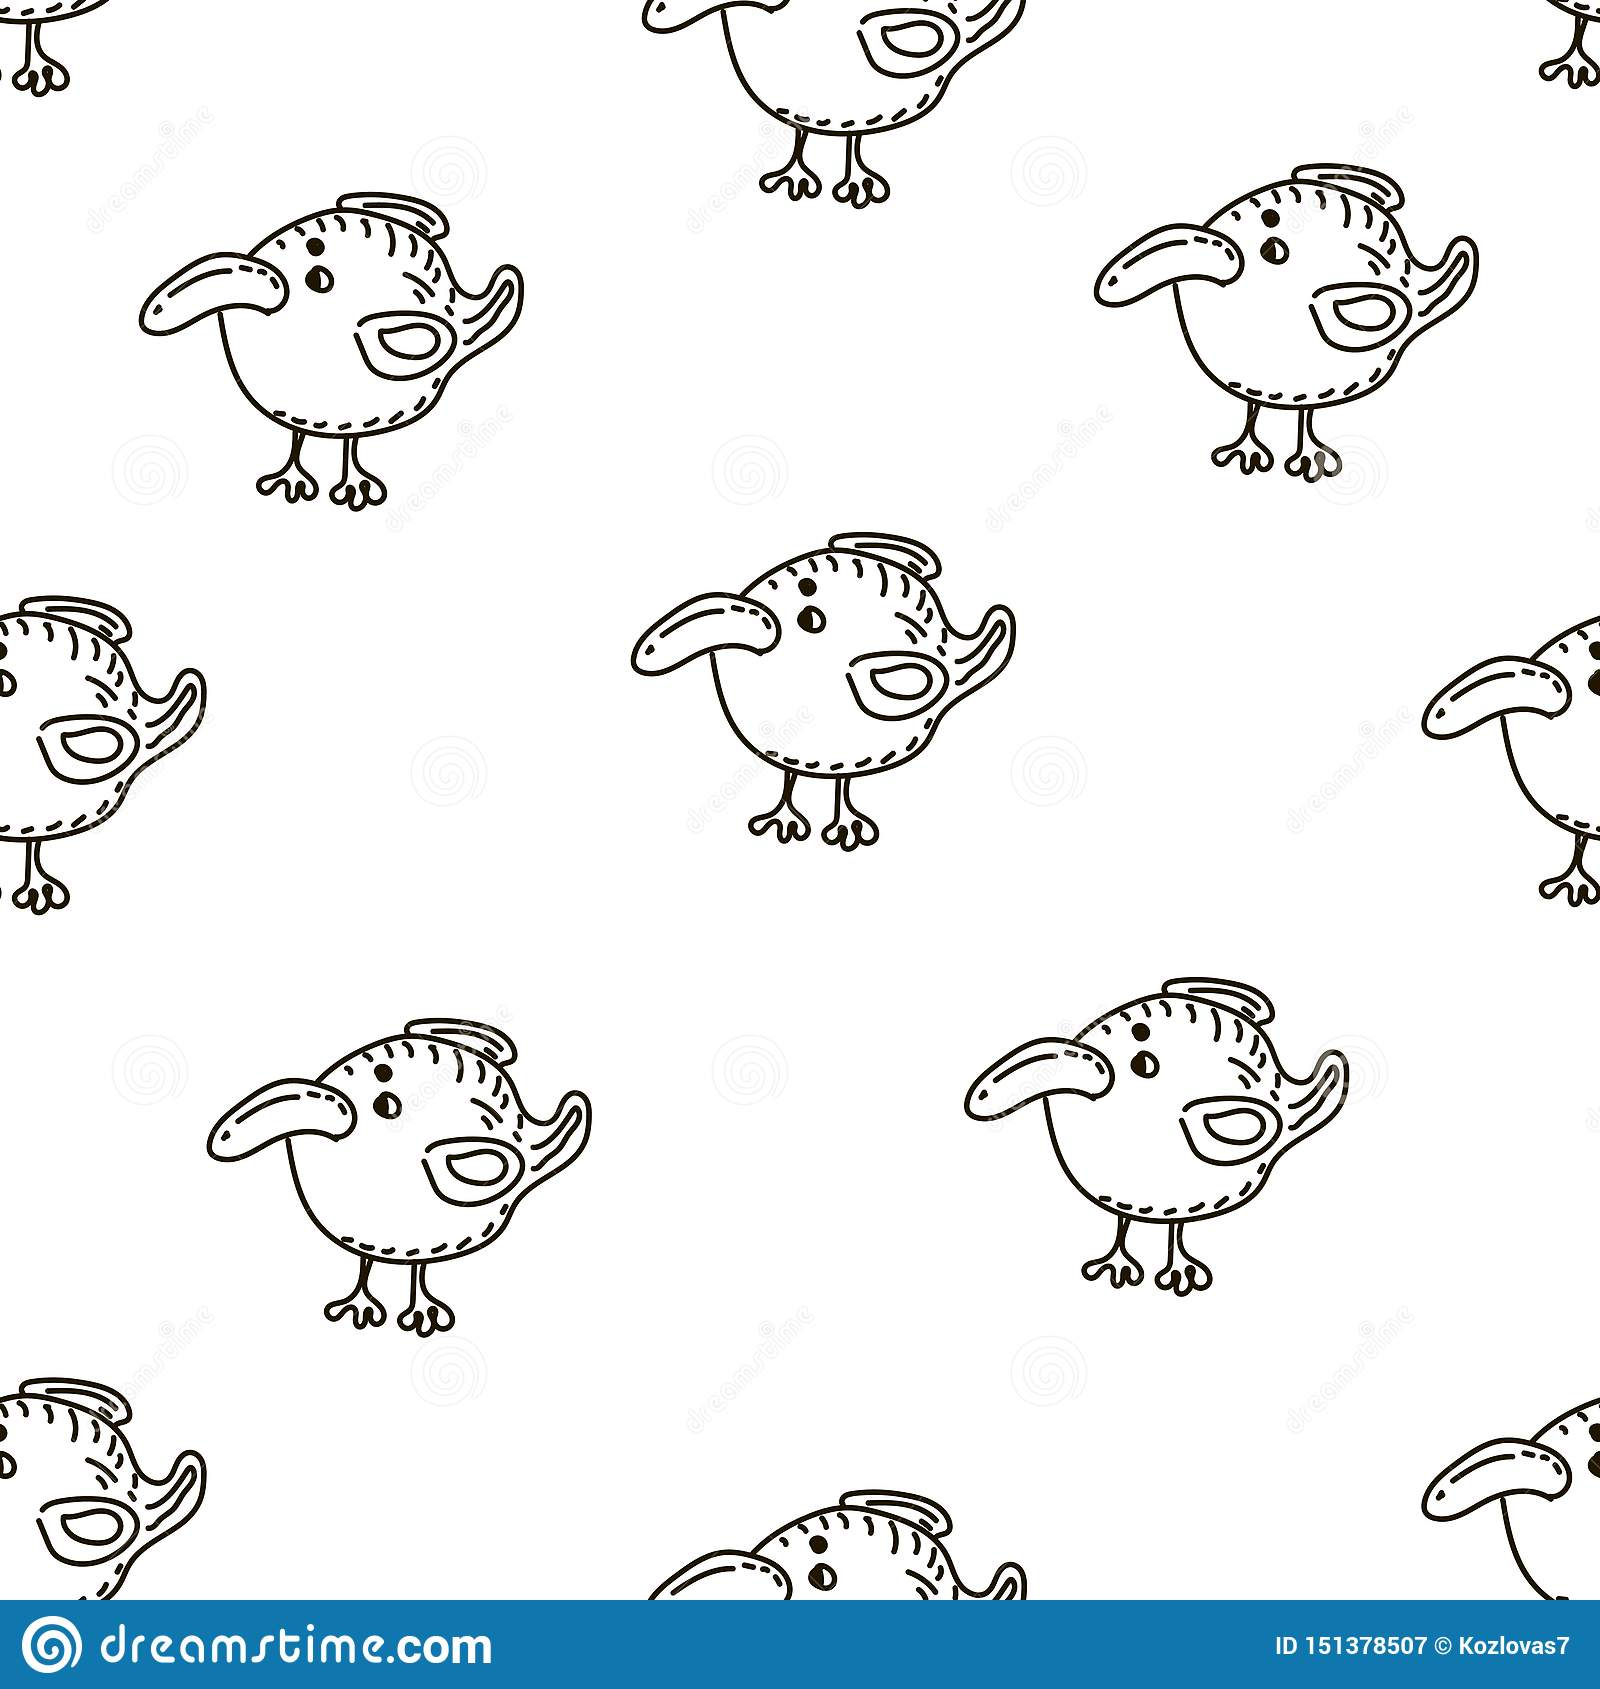 Baby seamless vector pattern. Many little birds on white background.